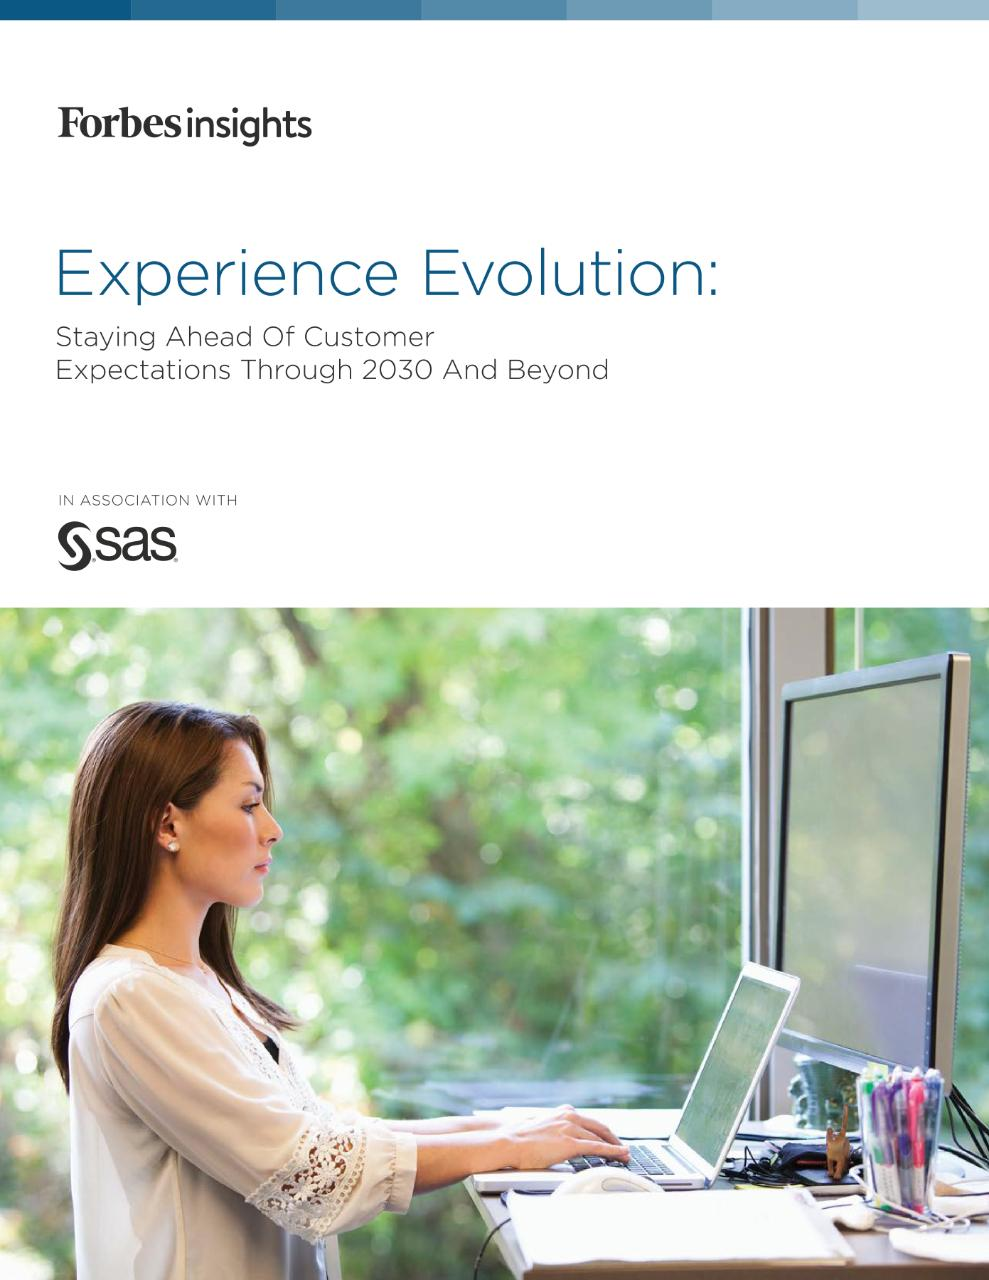 Experience Evolution: Staying Ahead of Customer Expectations Through 2030 and Beyond